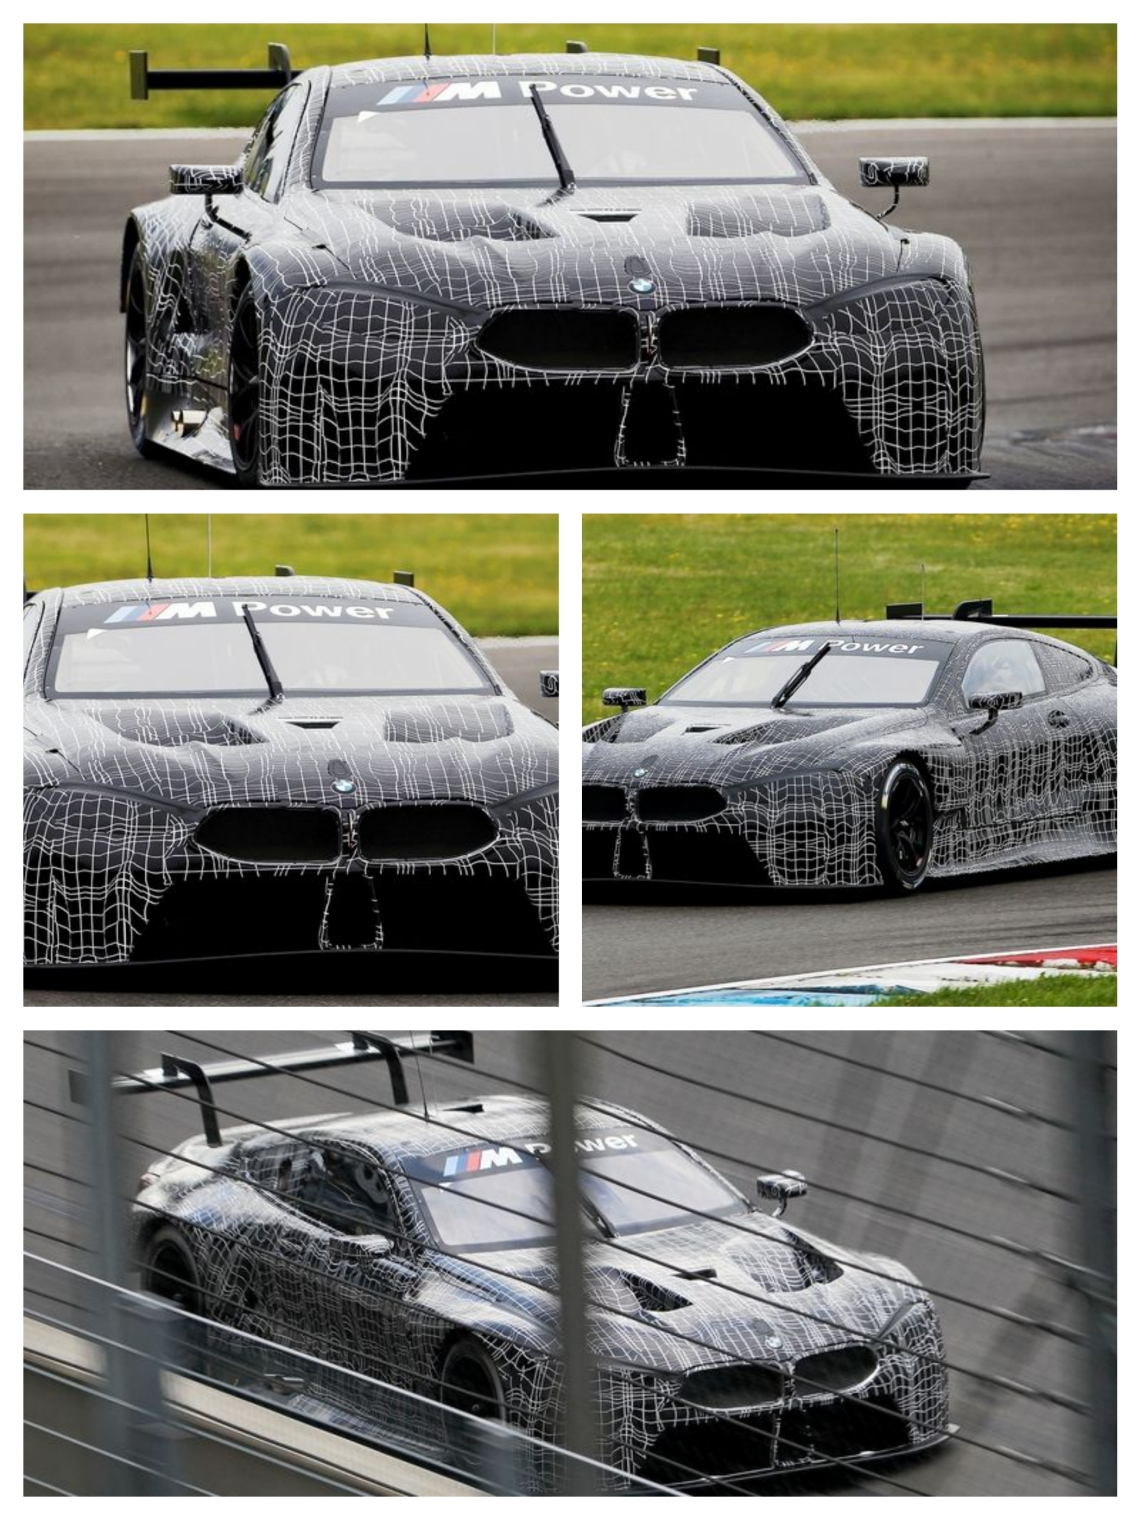 p90270297-highres-lausitzring-ger-11th-1500565095_Fotor_Collage